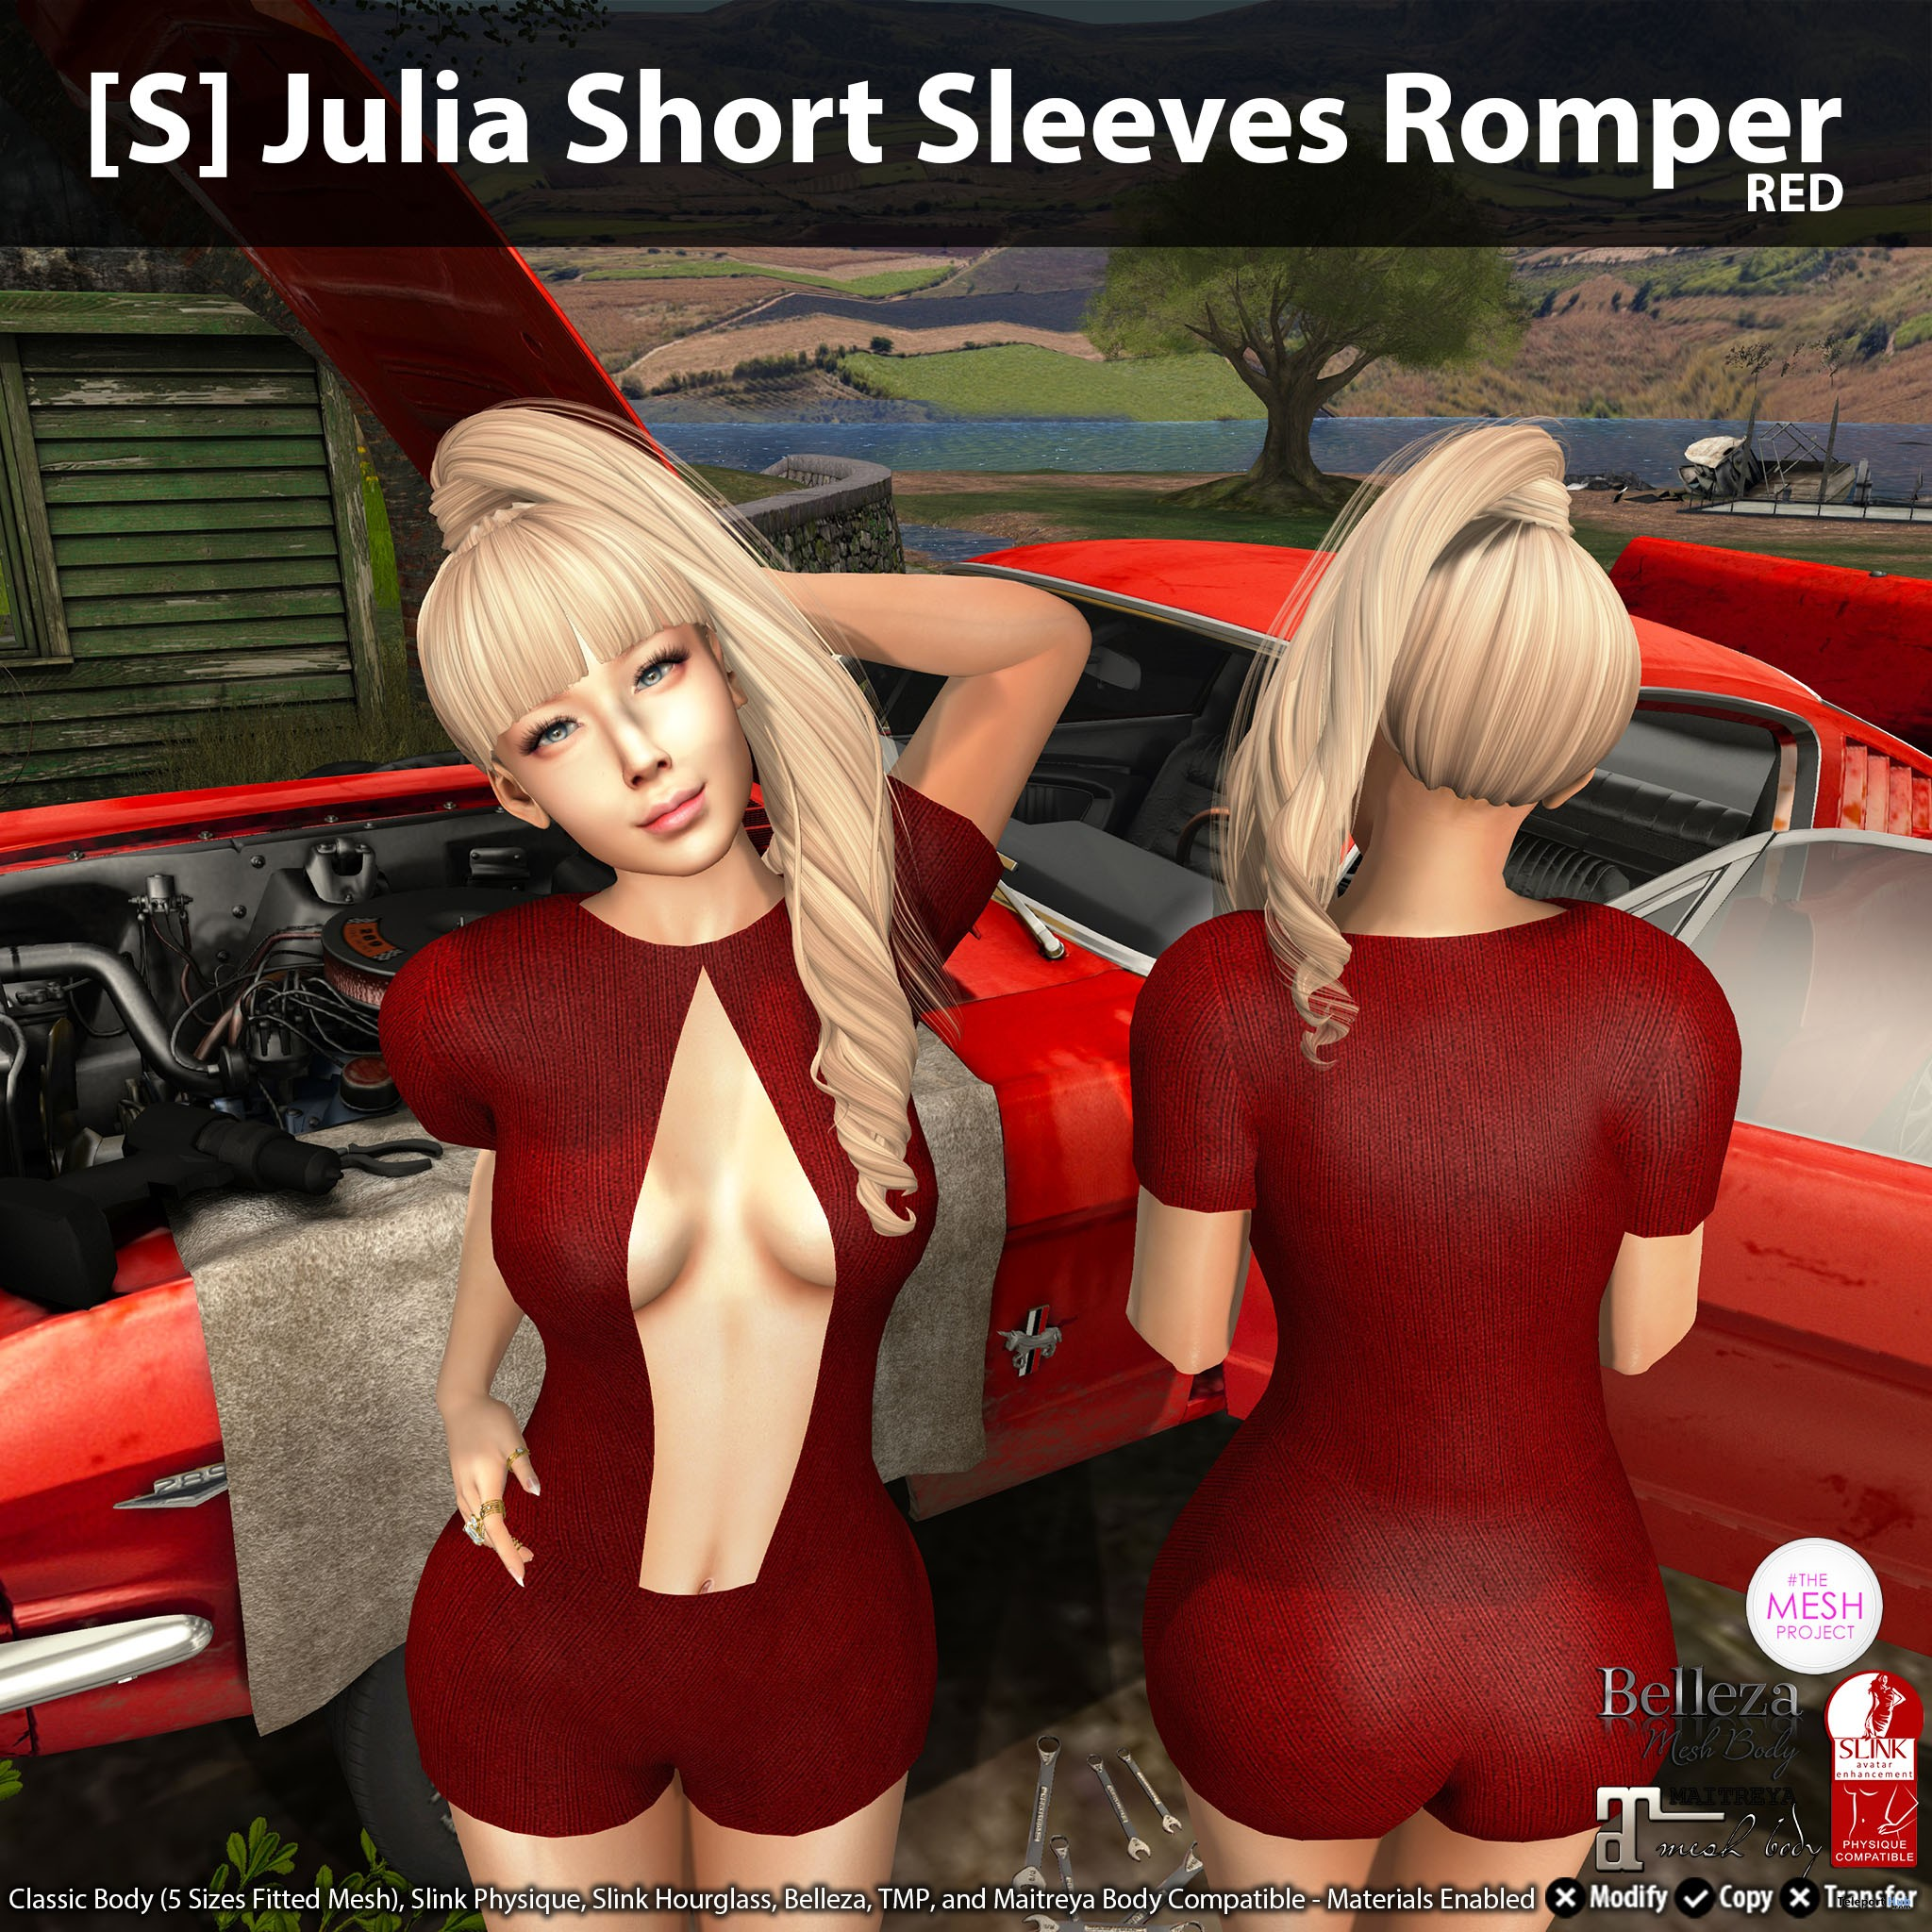 New Release: [S] Julia Short Sleeves Romper by [satus Inc] - Teleport Hub - teleporthub.com